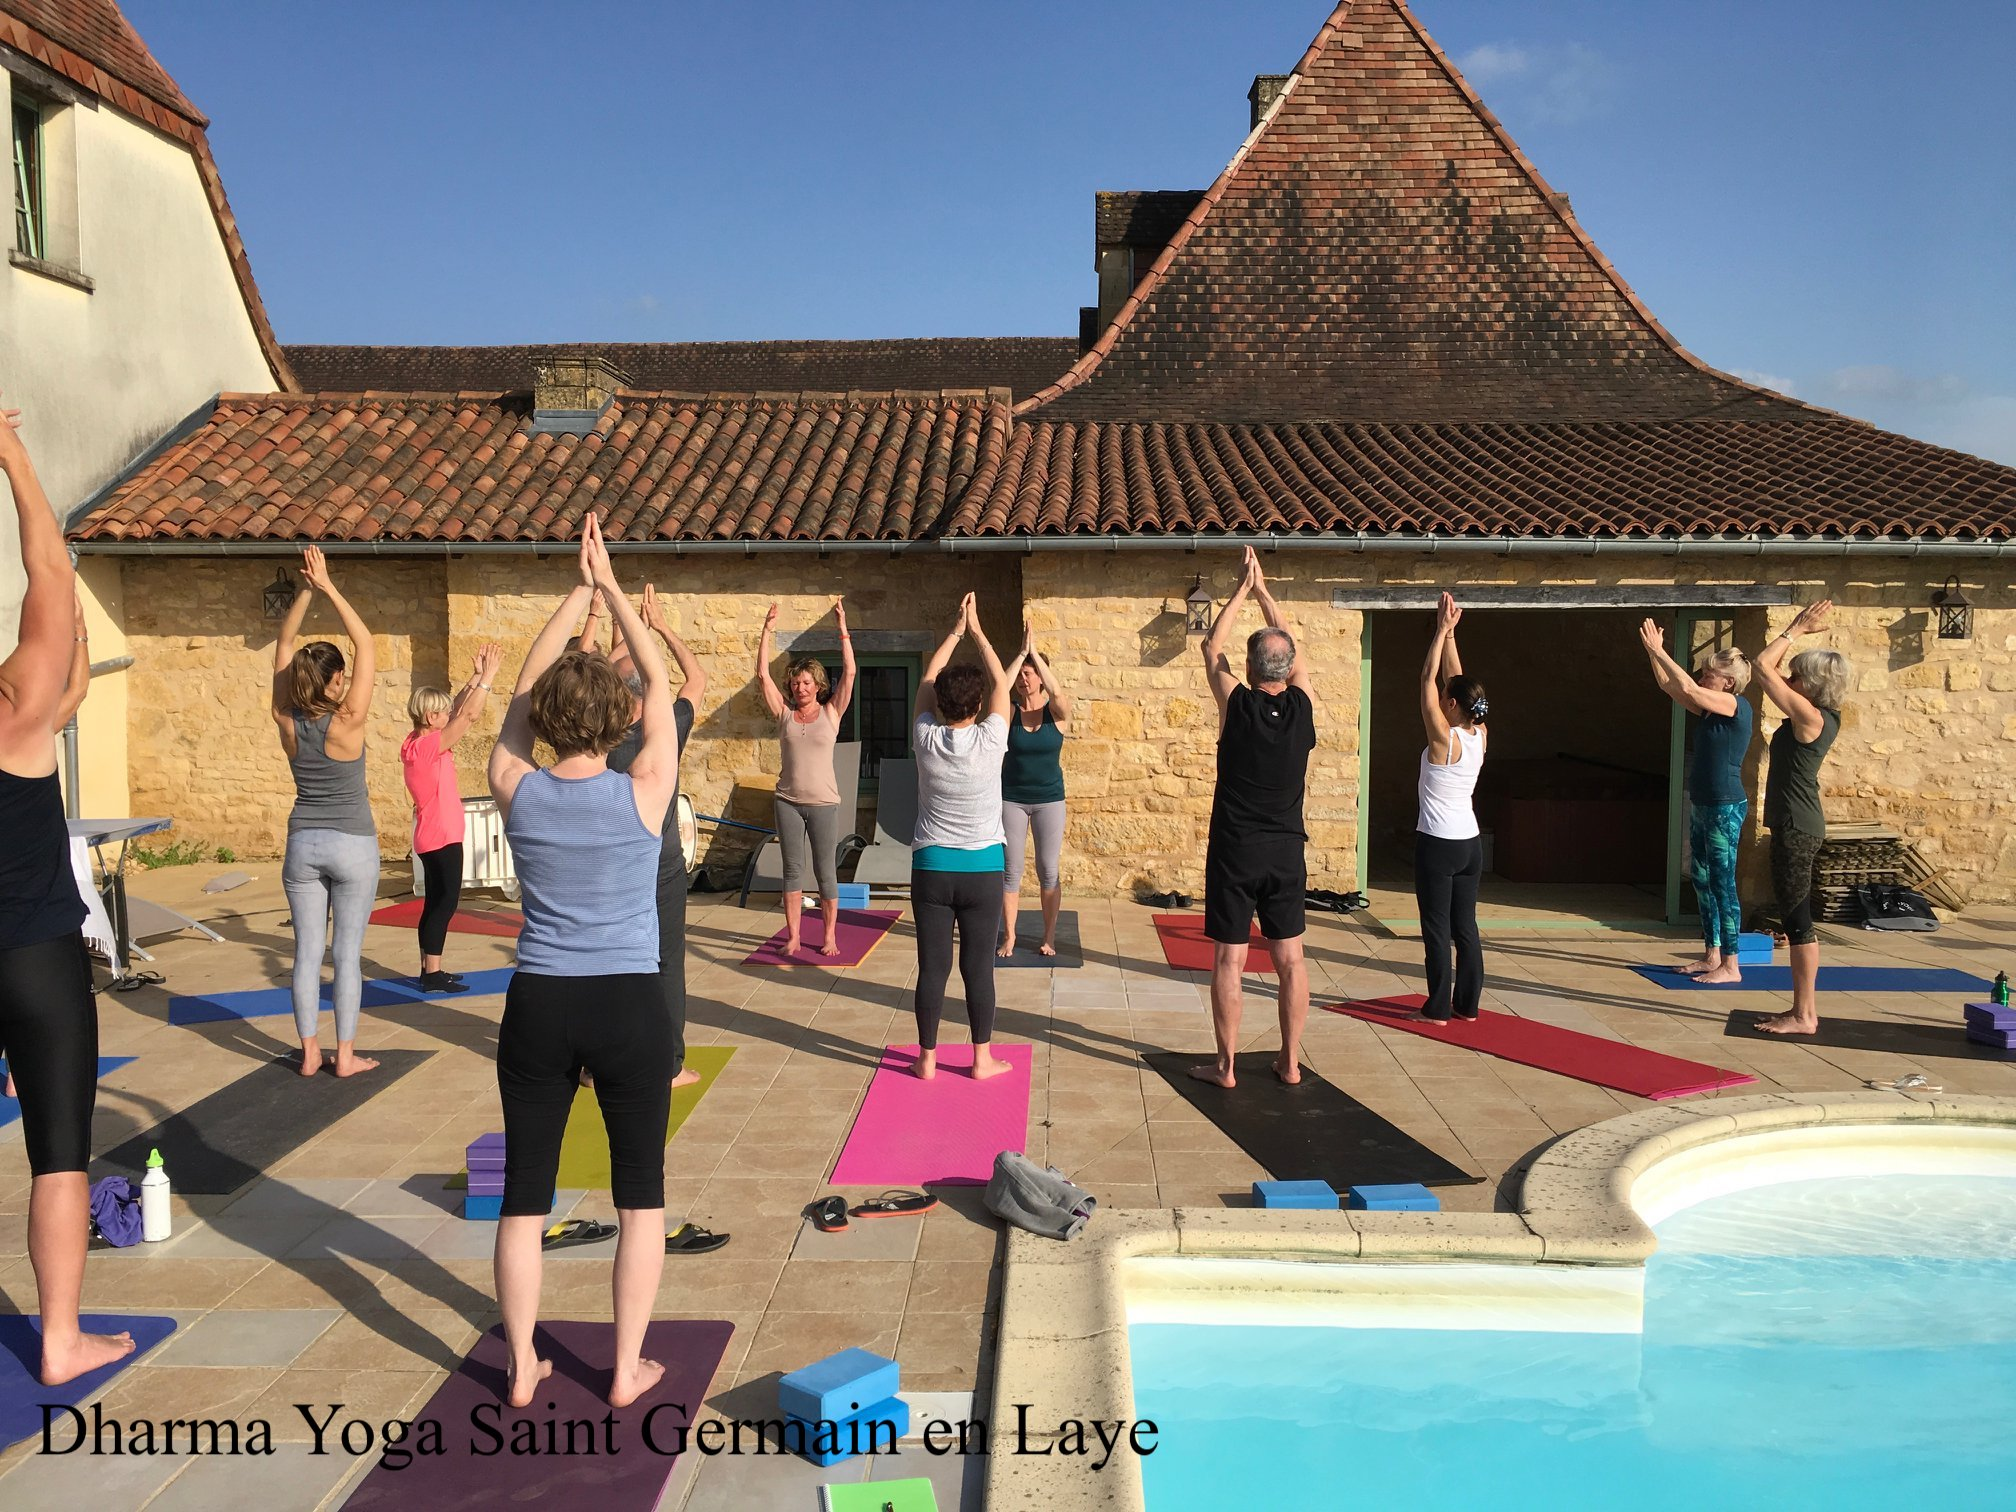 Dharma Yoga - Saint Germain en Laye 4